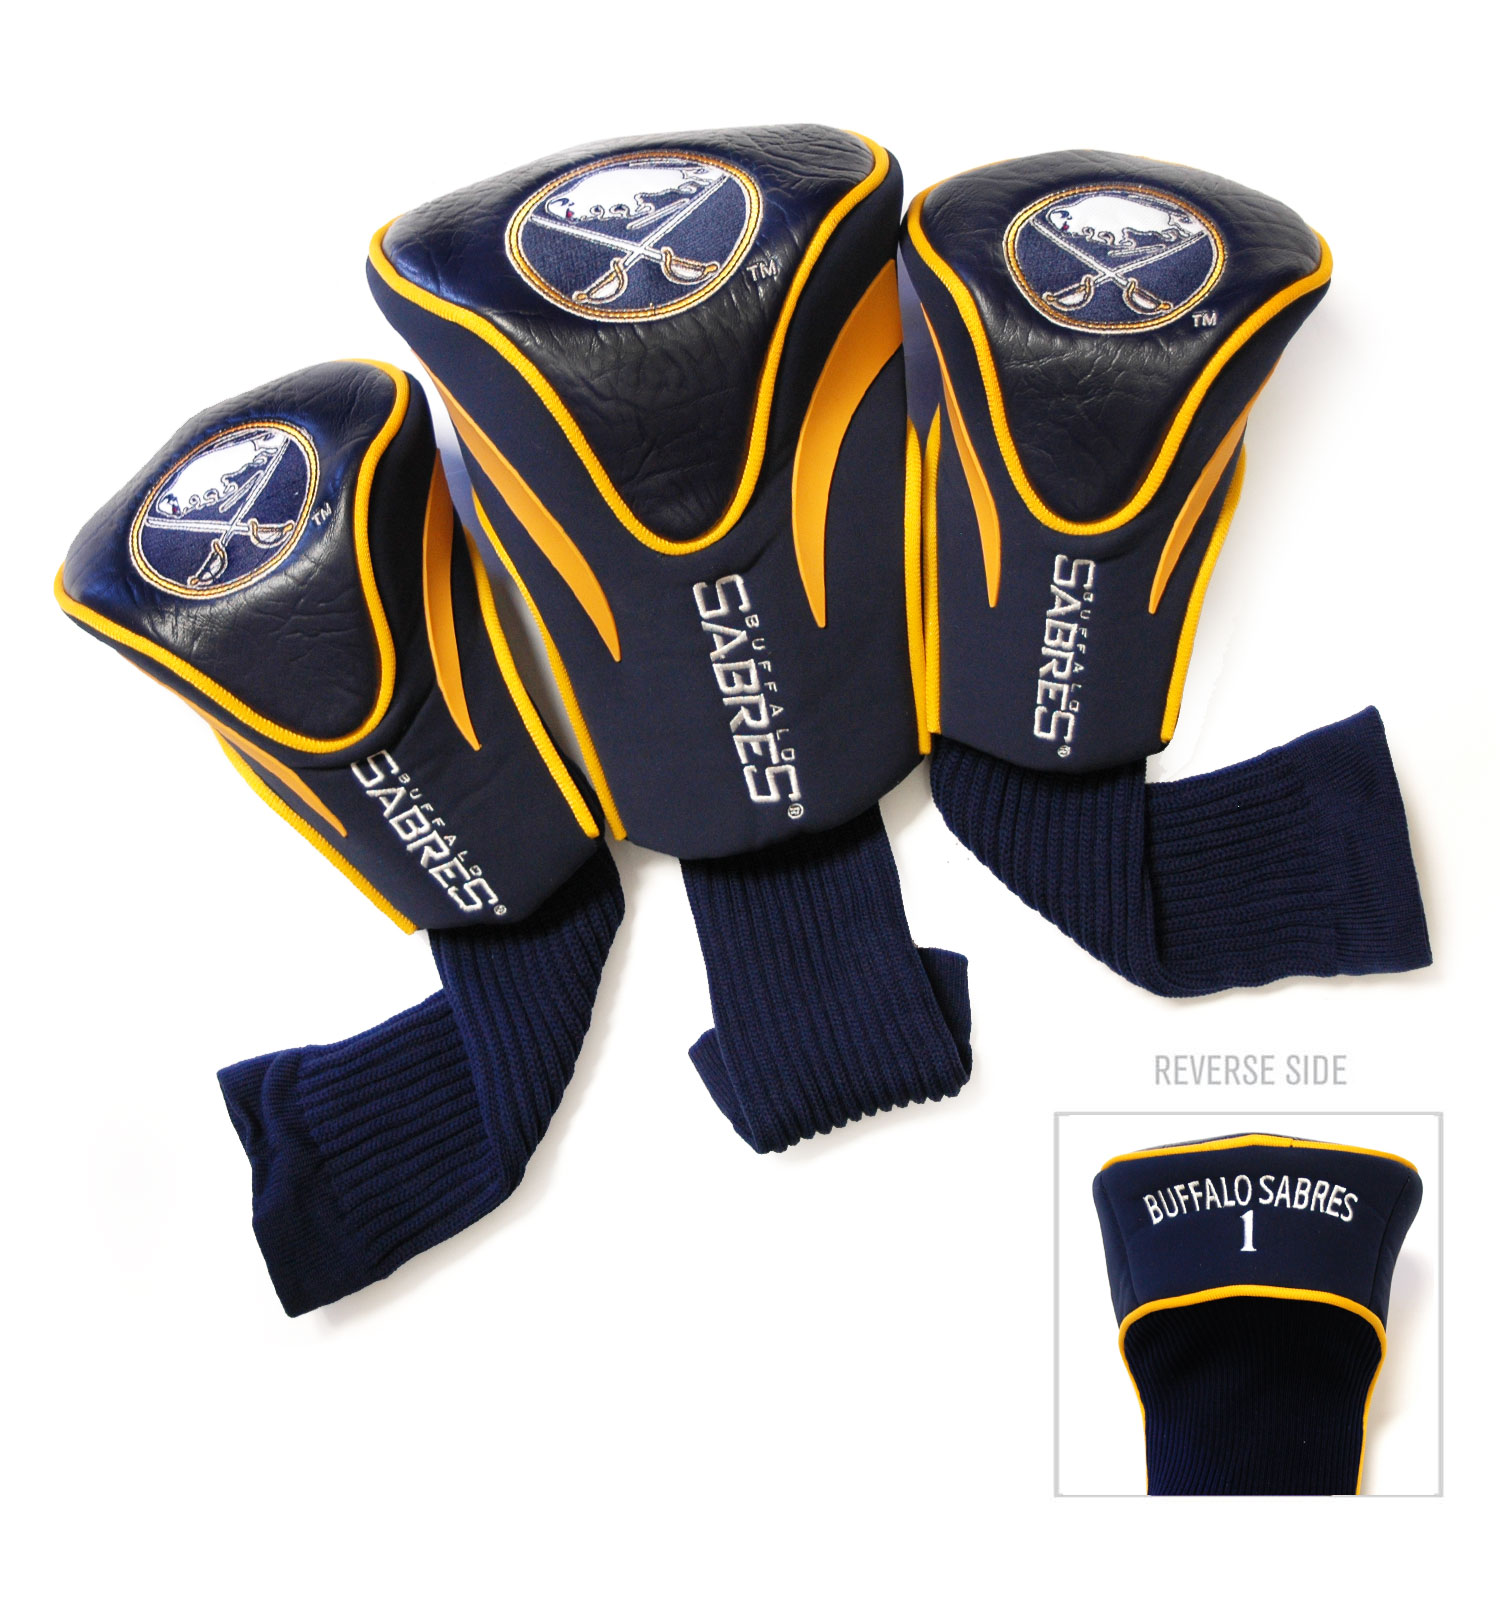 Buffalo Sabres 3 Pack Golf Contour Sock Headcovers